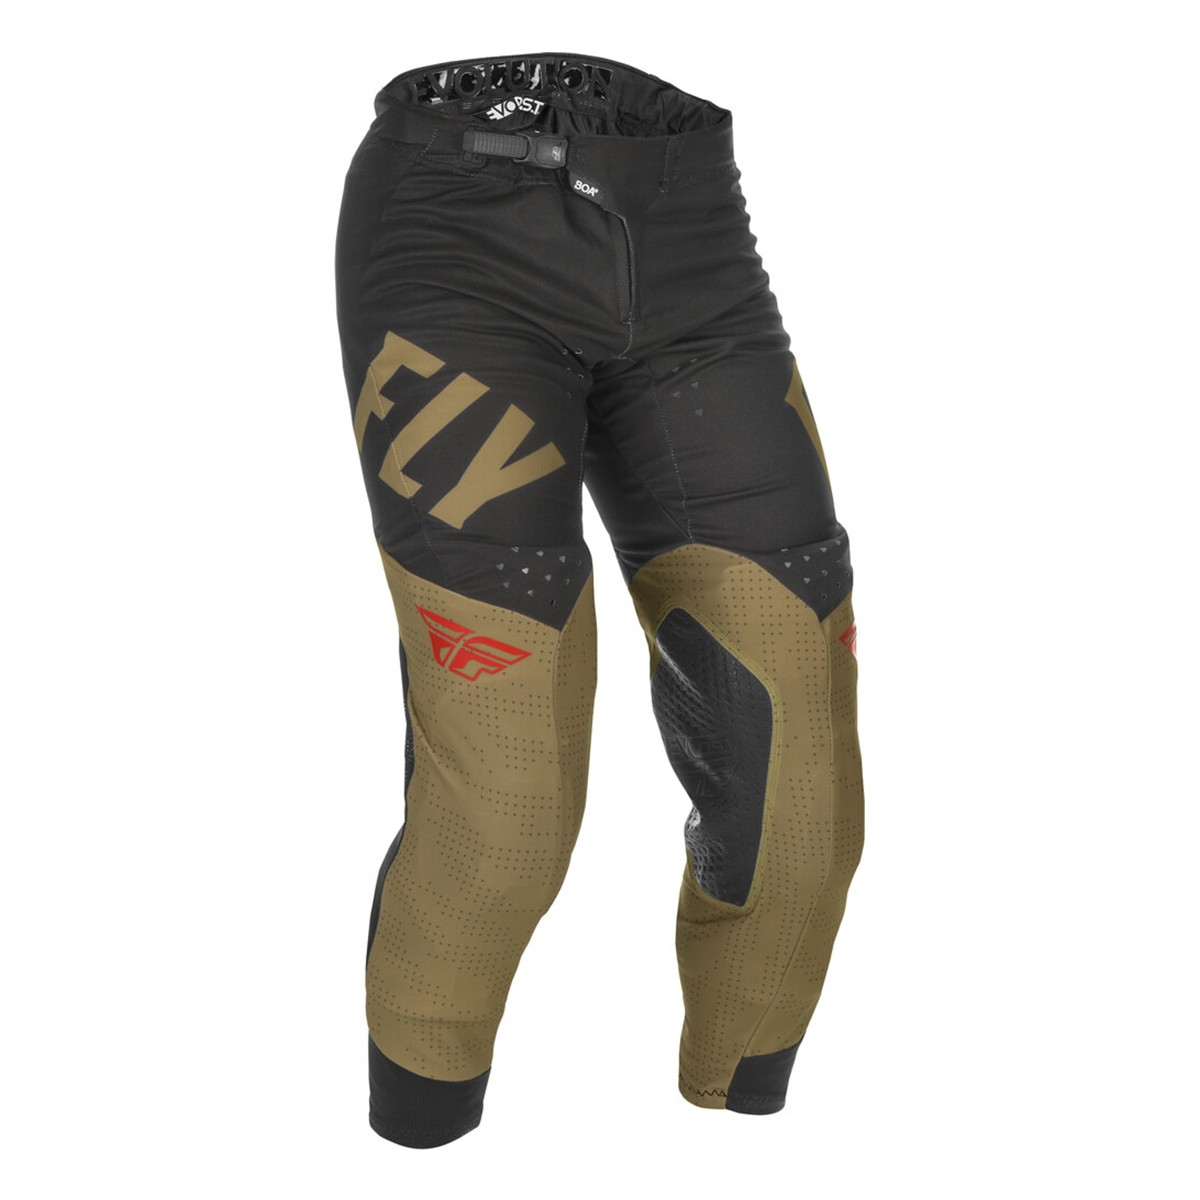 FLY EVOLUTION DST 2021 PANTS